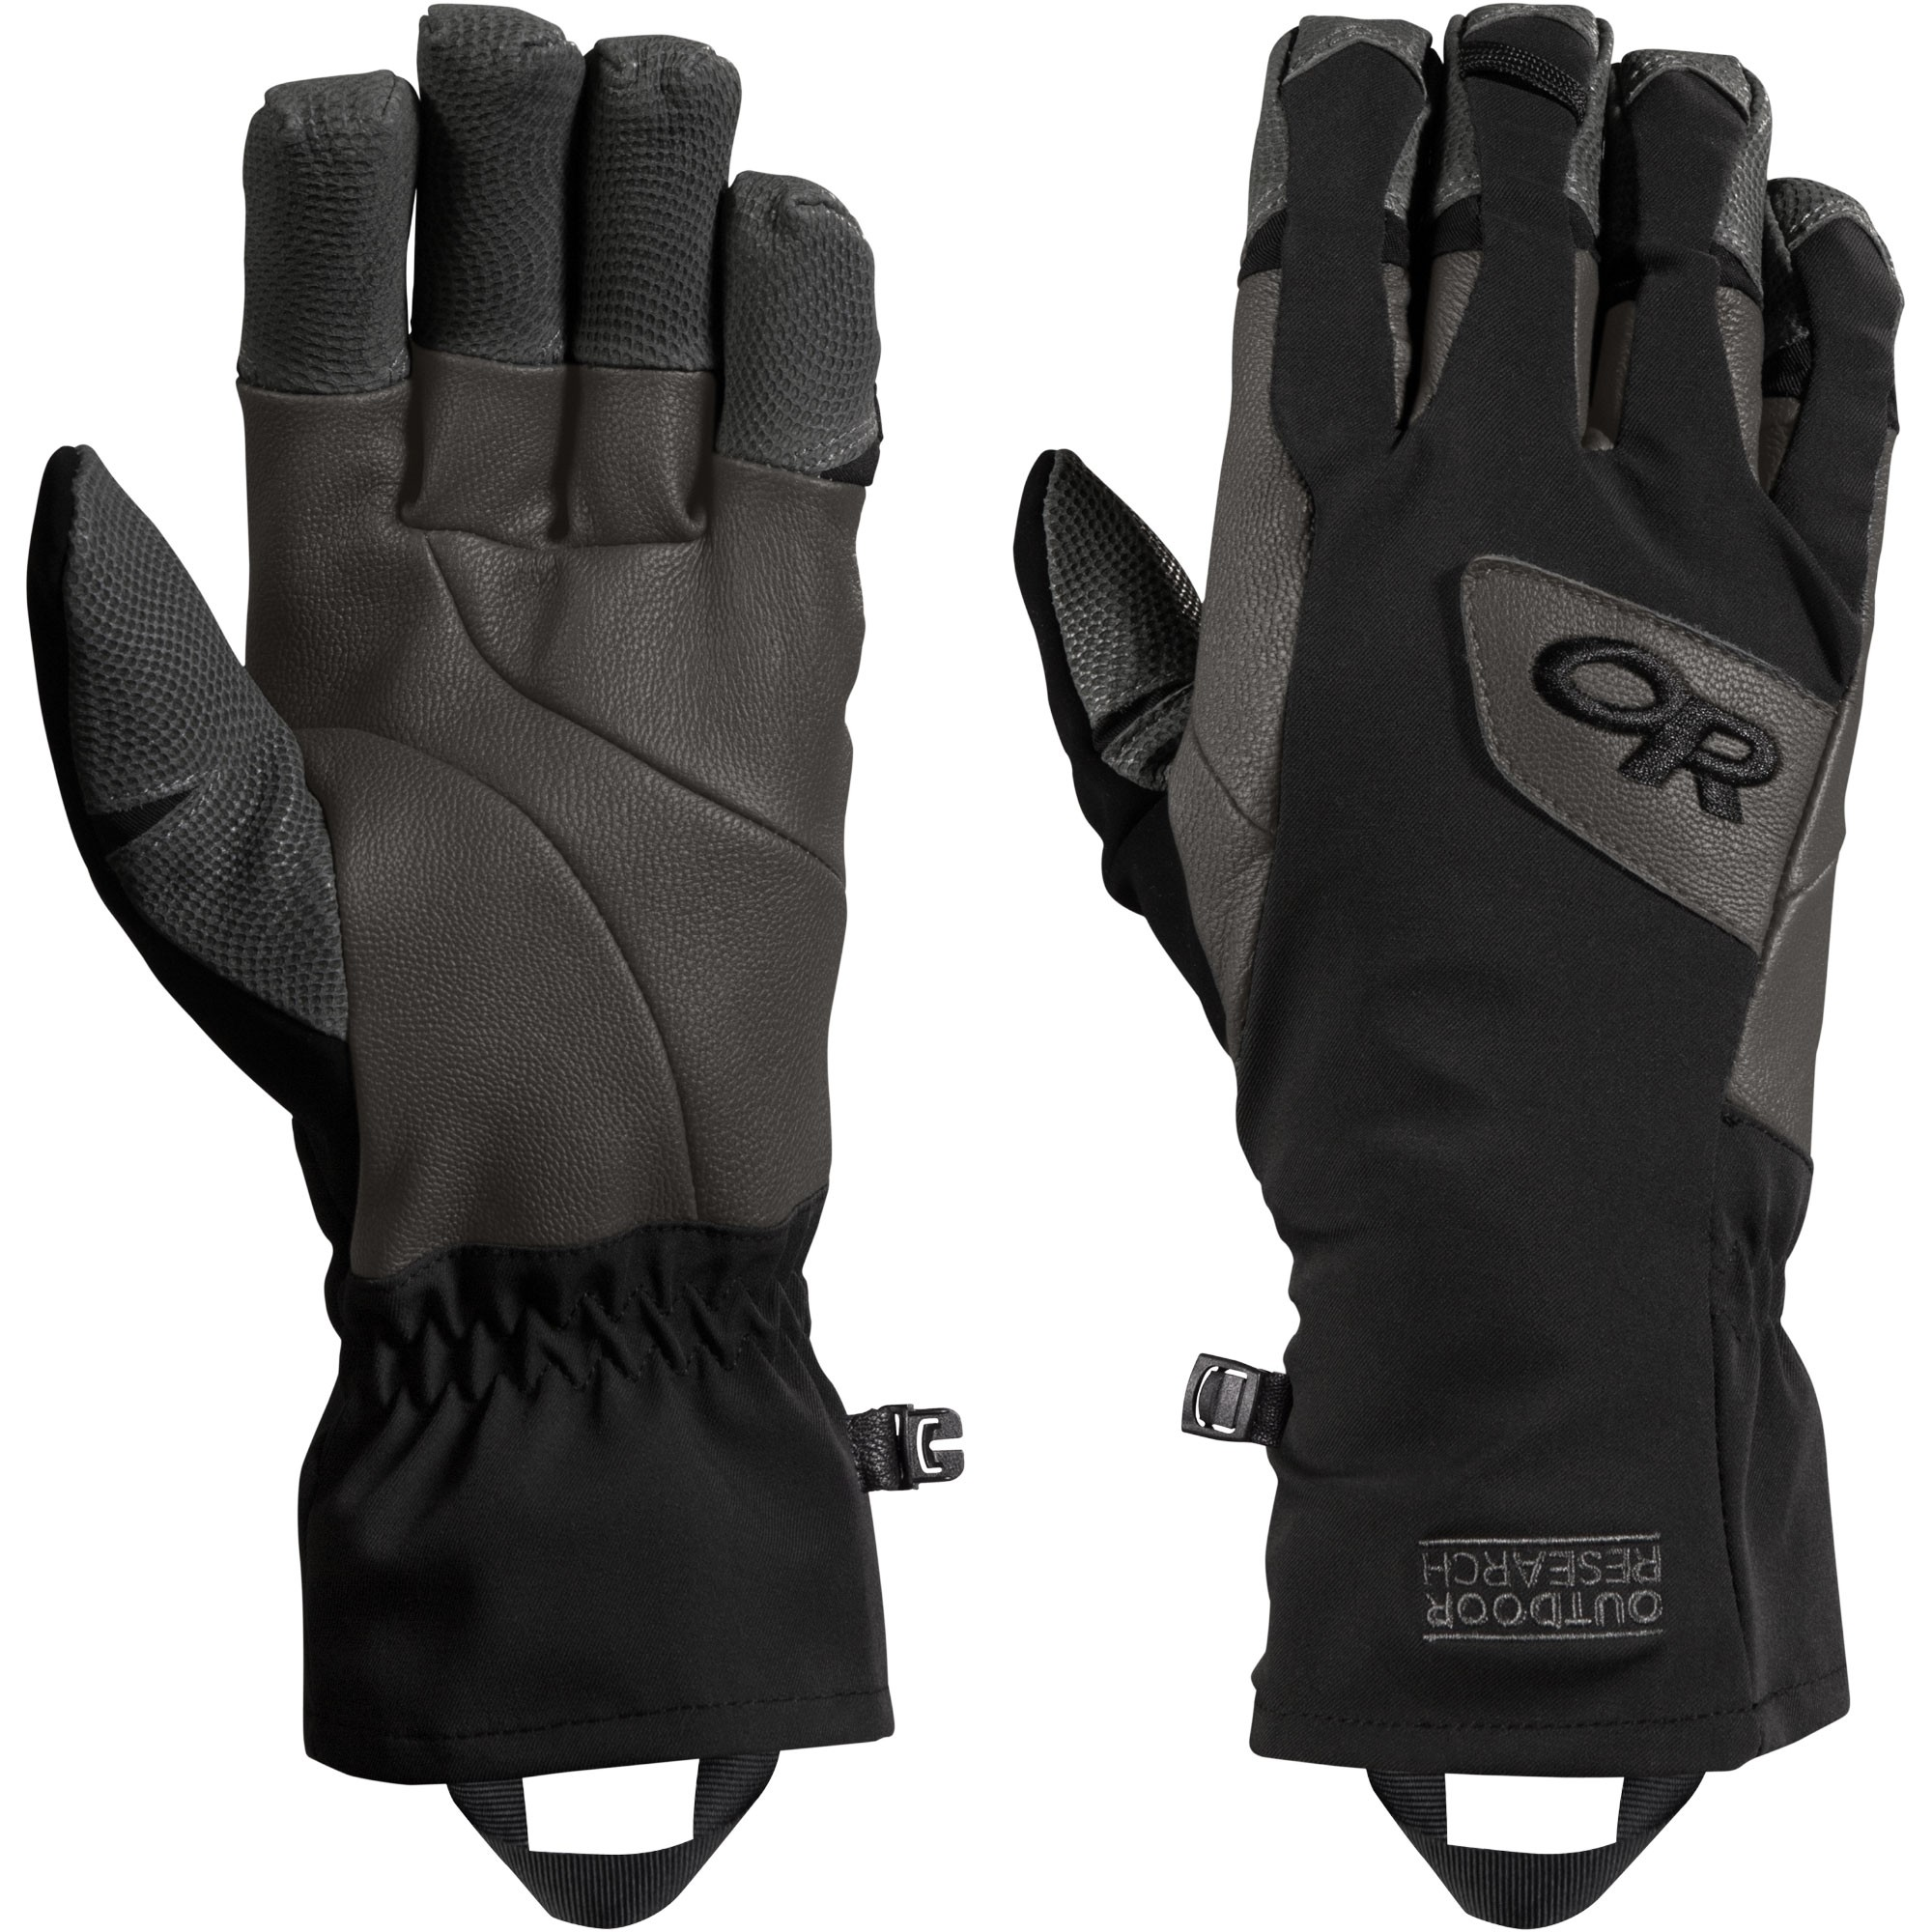 Outdoor-Research-Super-Vert-Glove-Black-Charcoal-W17.